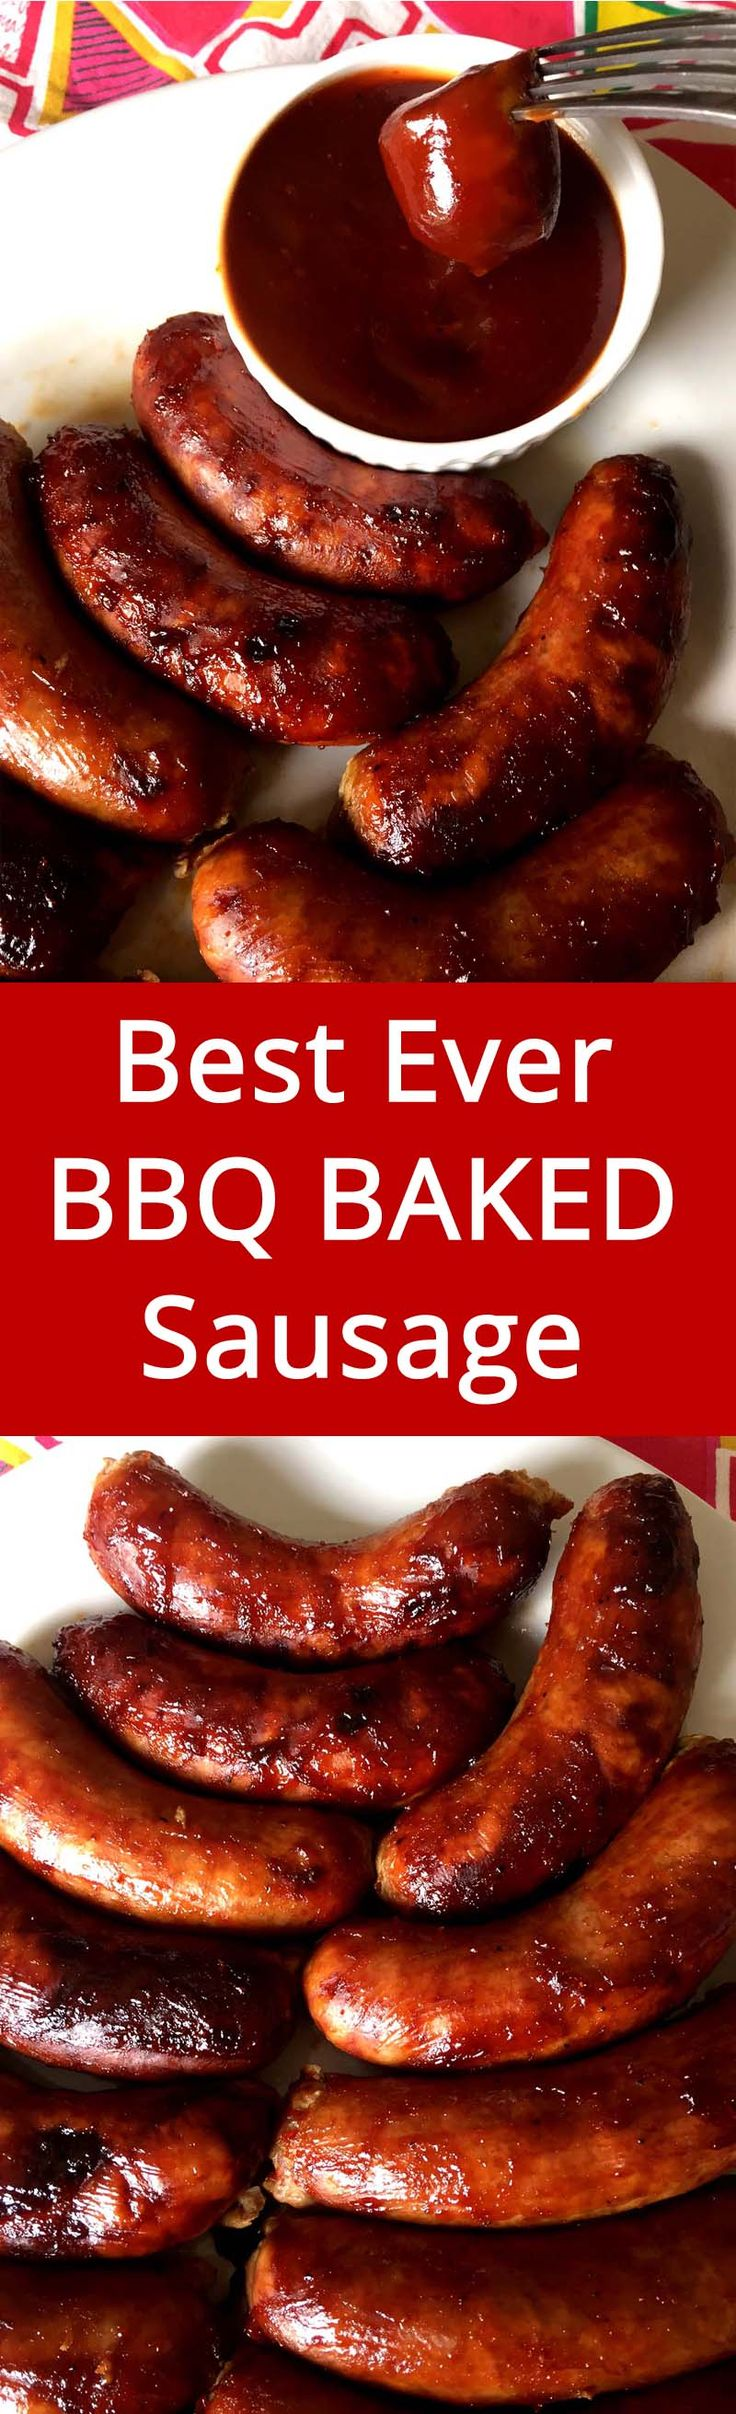 This BBQ baked sausage is always a hit! Super easy to make, I love this recipe! Everyone begs me to make it all the time!